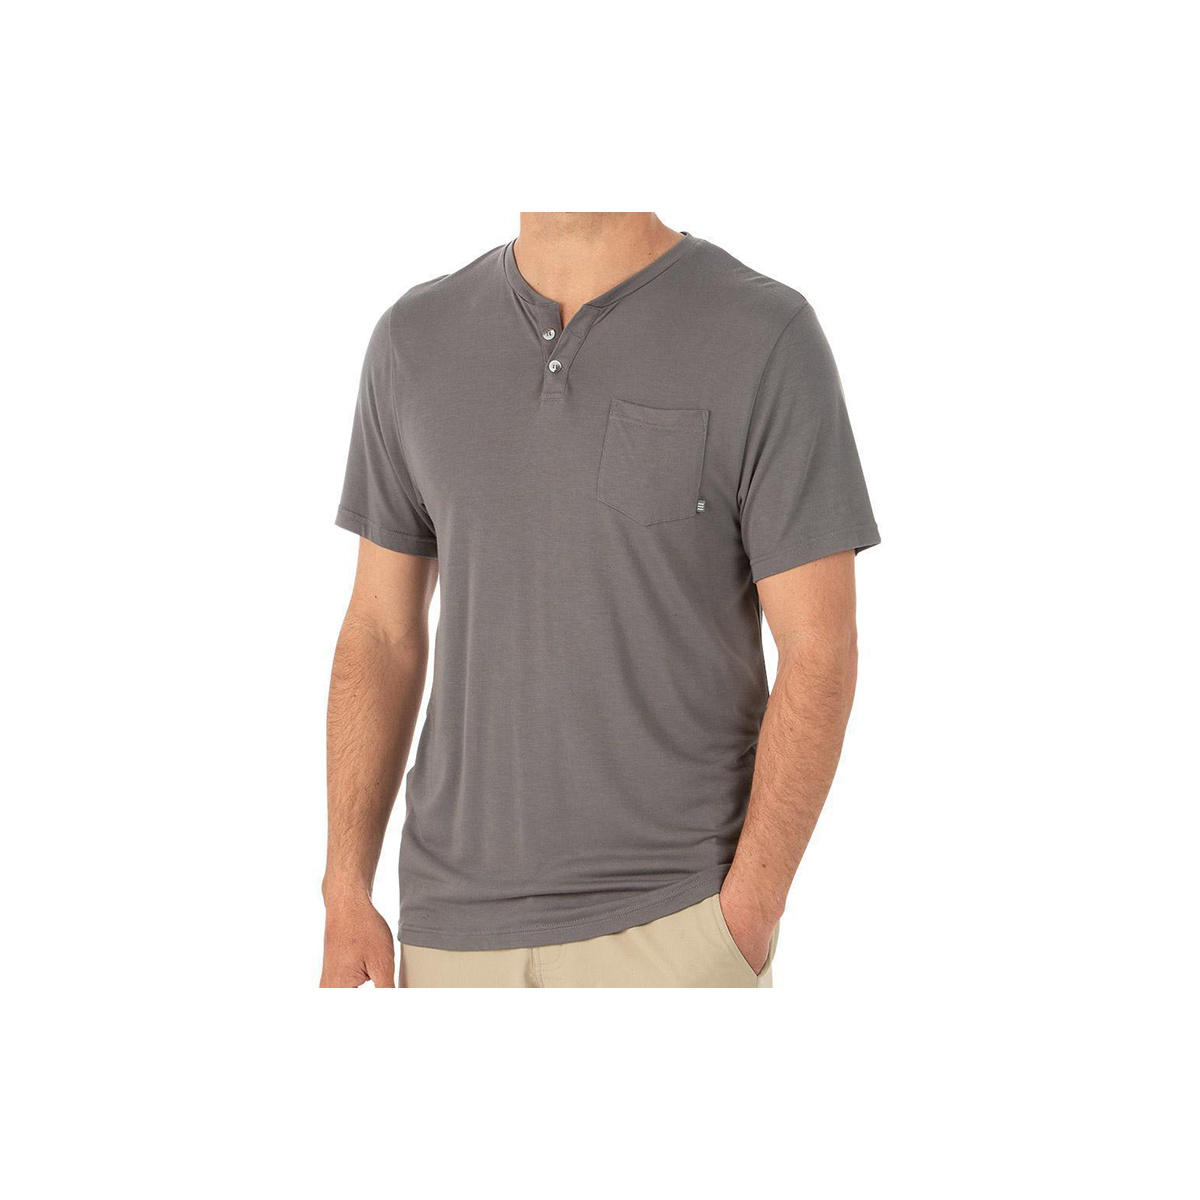 Free Fly Apparel Men's Bamboo Slacktide Short Sleeve Henley